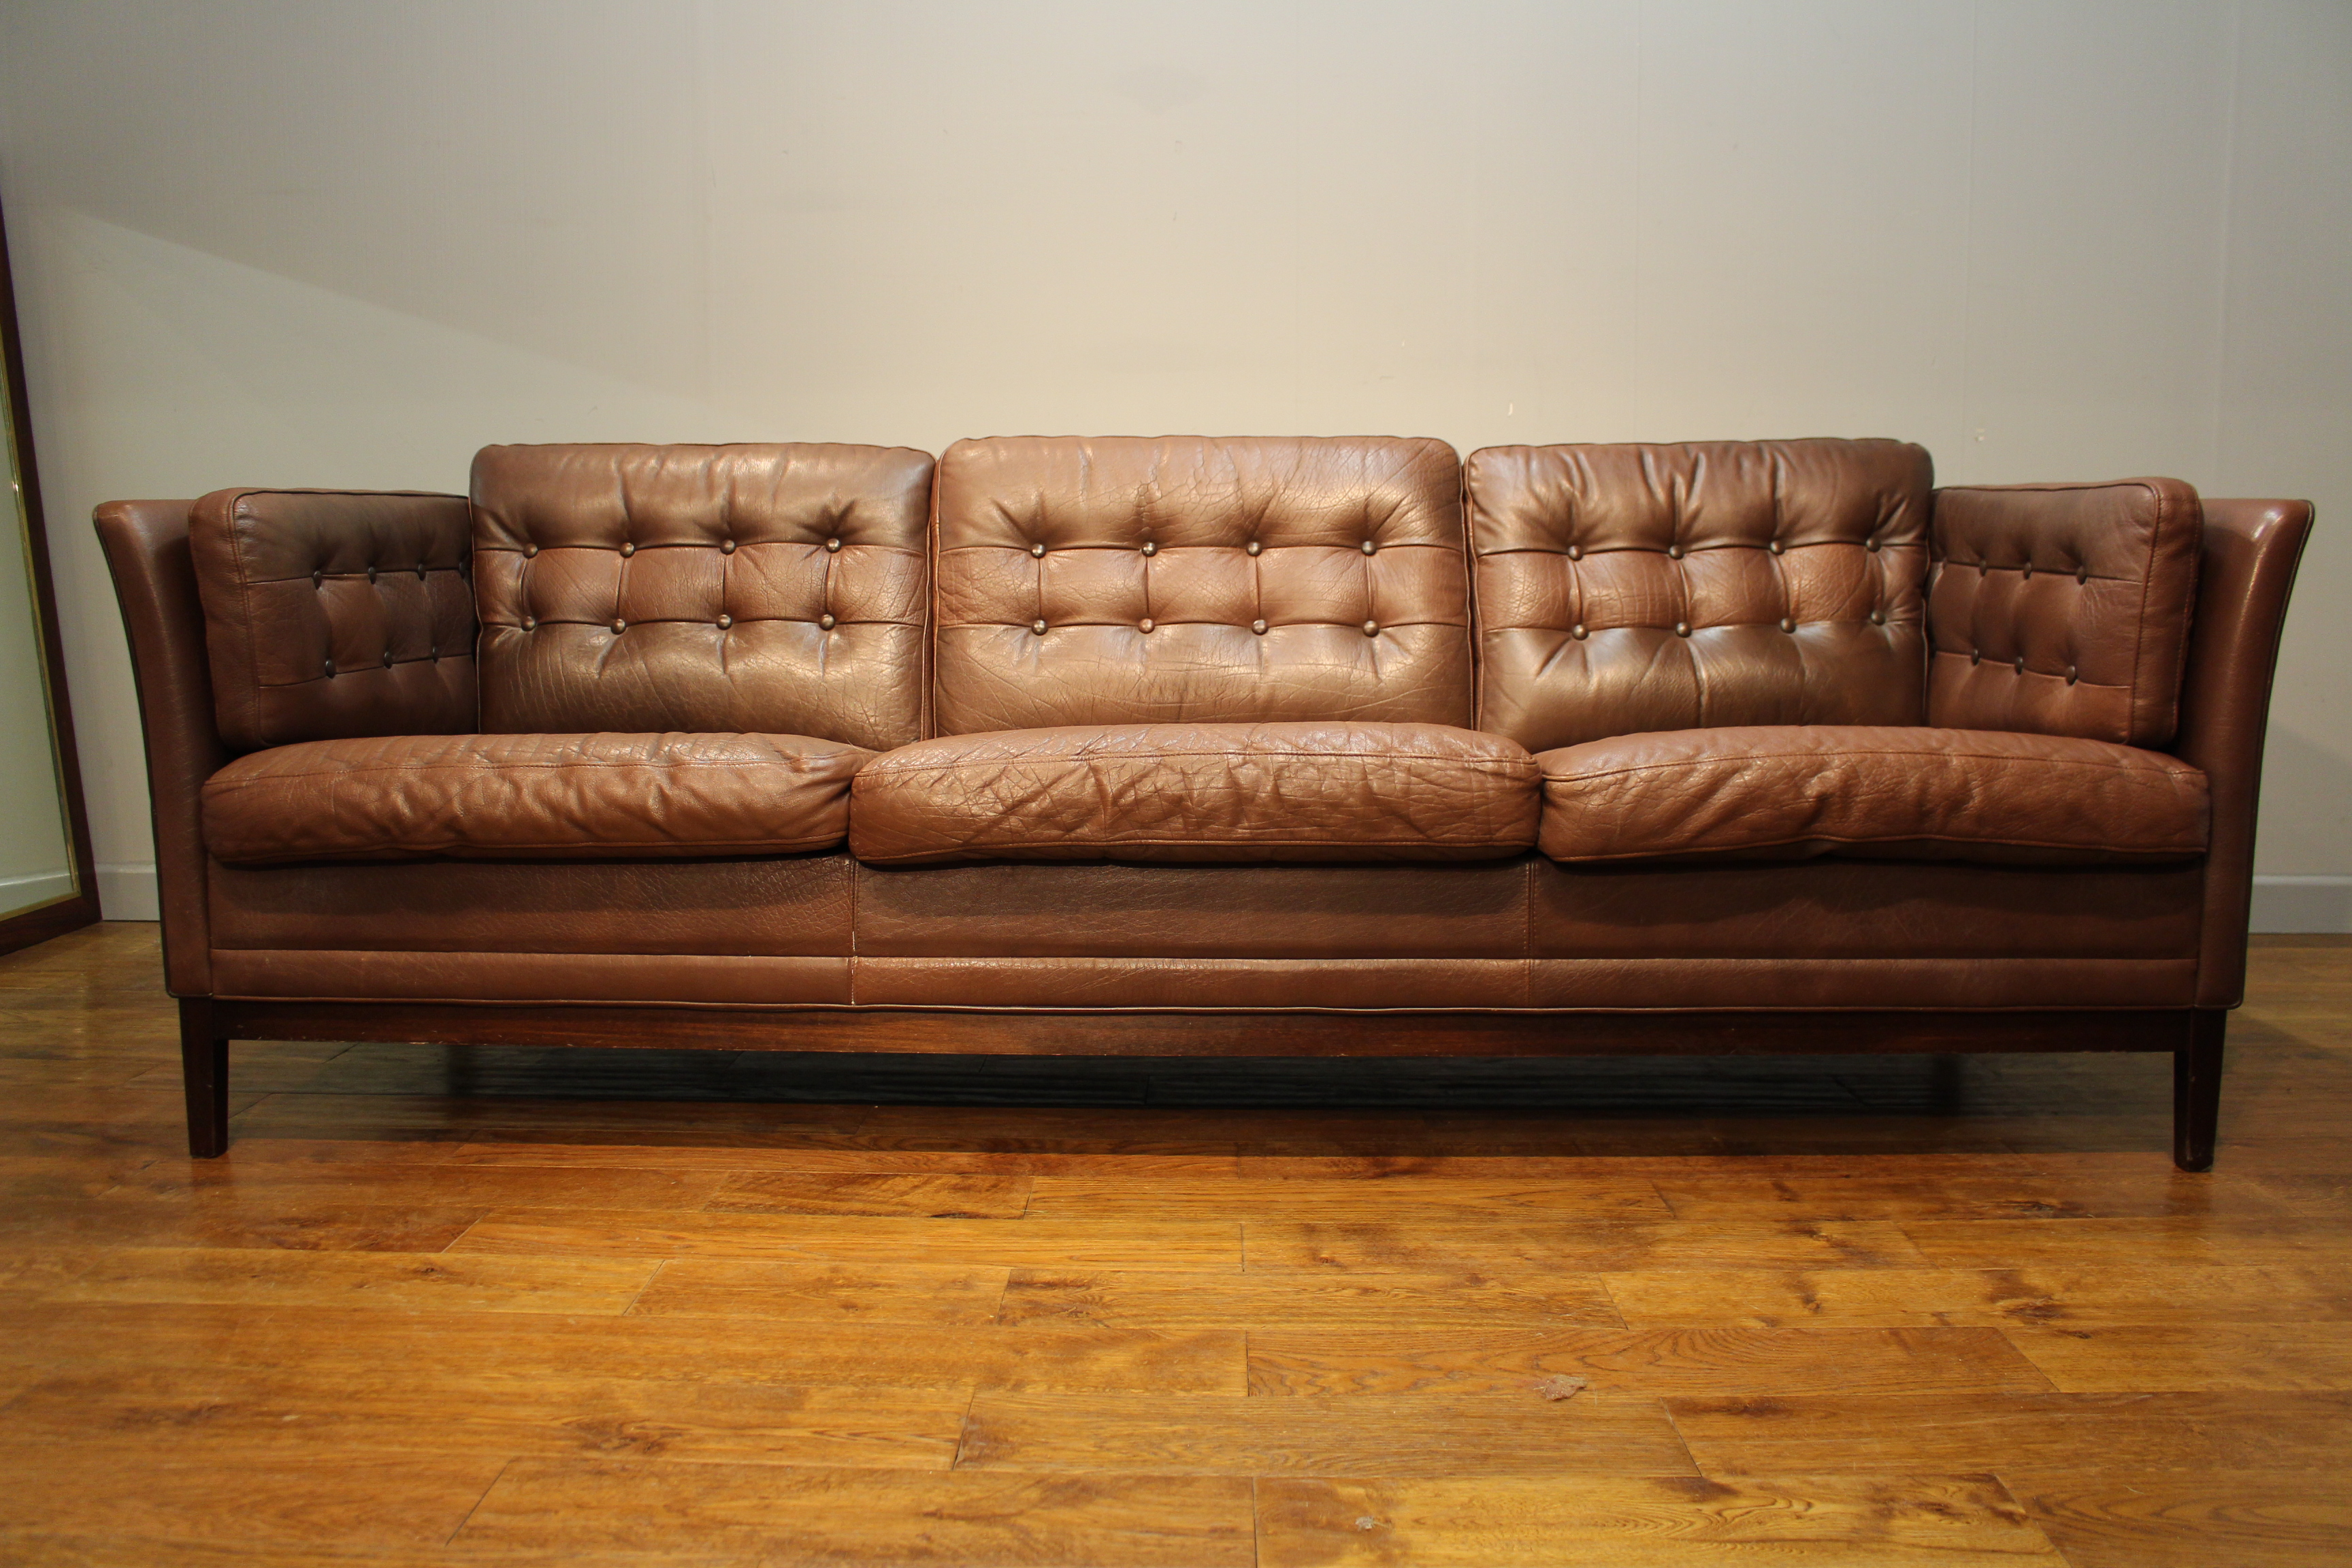 good danish 70s vintage leather sofa pure imagination. Black Bedroom Furniture Sets. Home Design Ideas